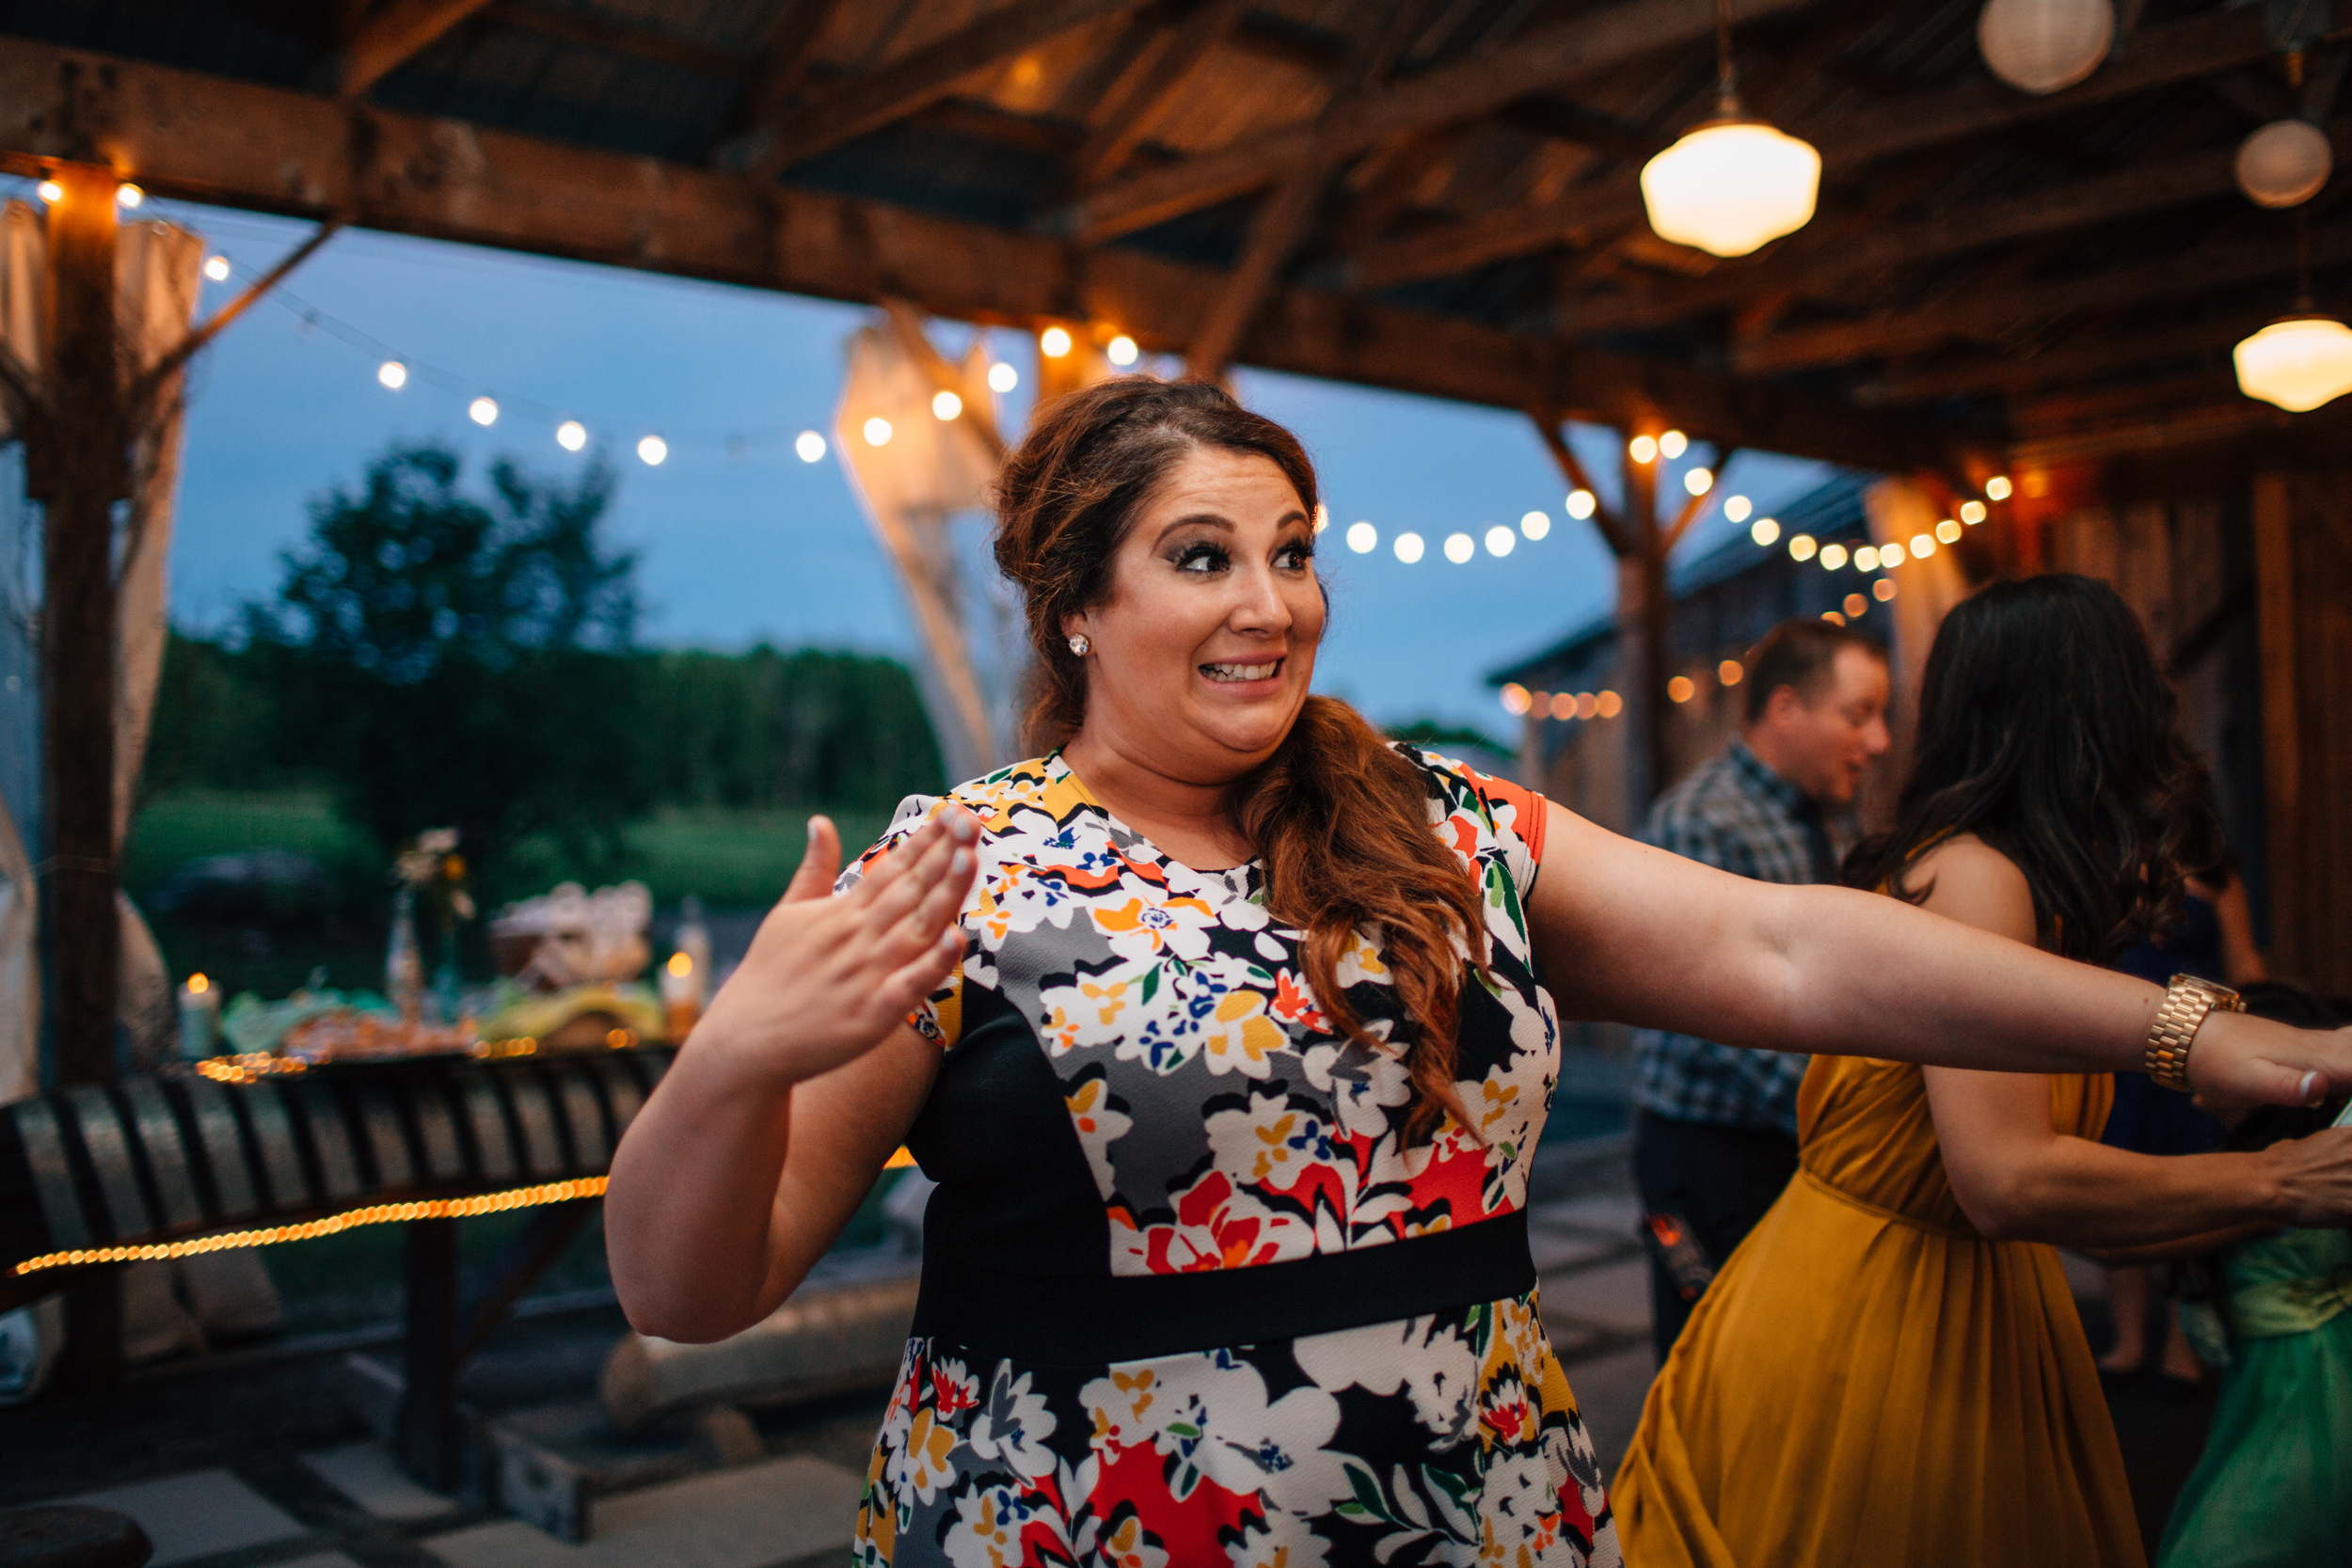 KELLIandBRADweddingJUNE2015 - reception (304 of 384).jpg